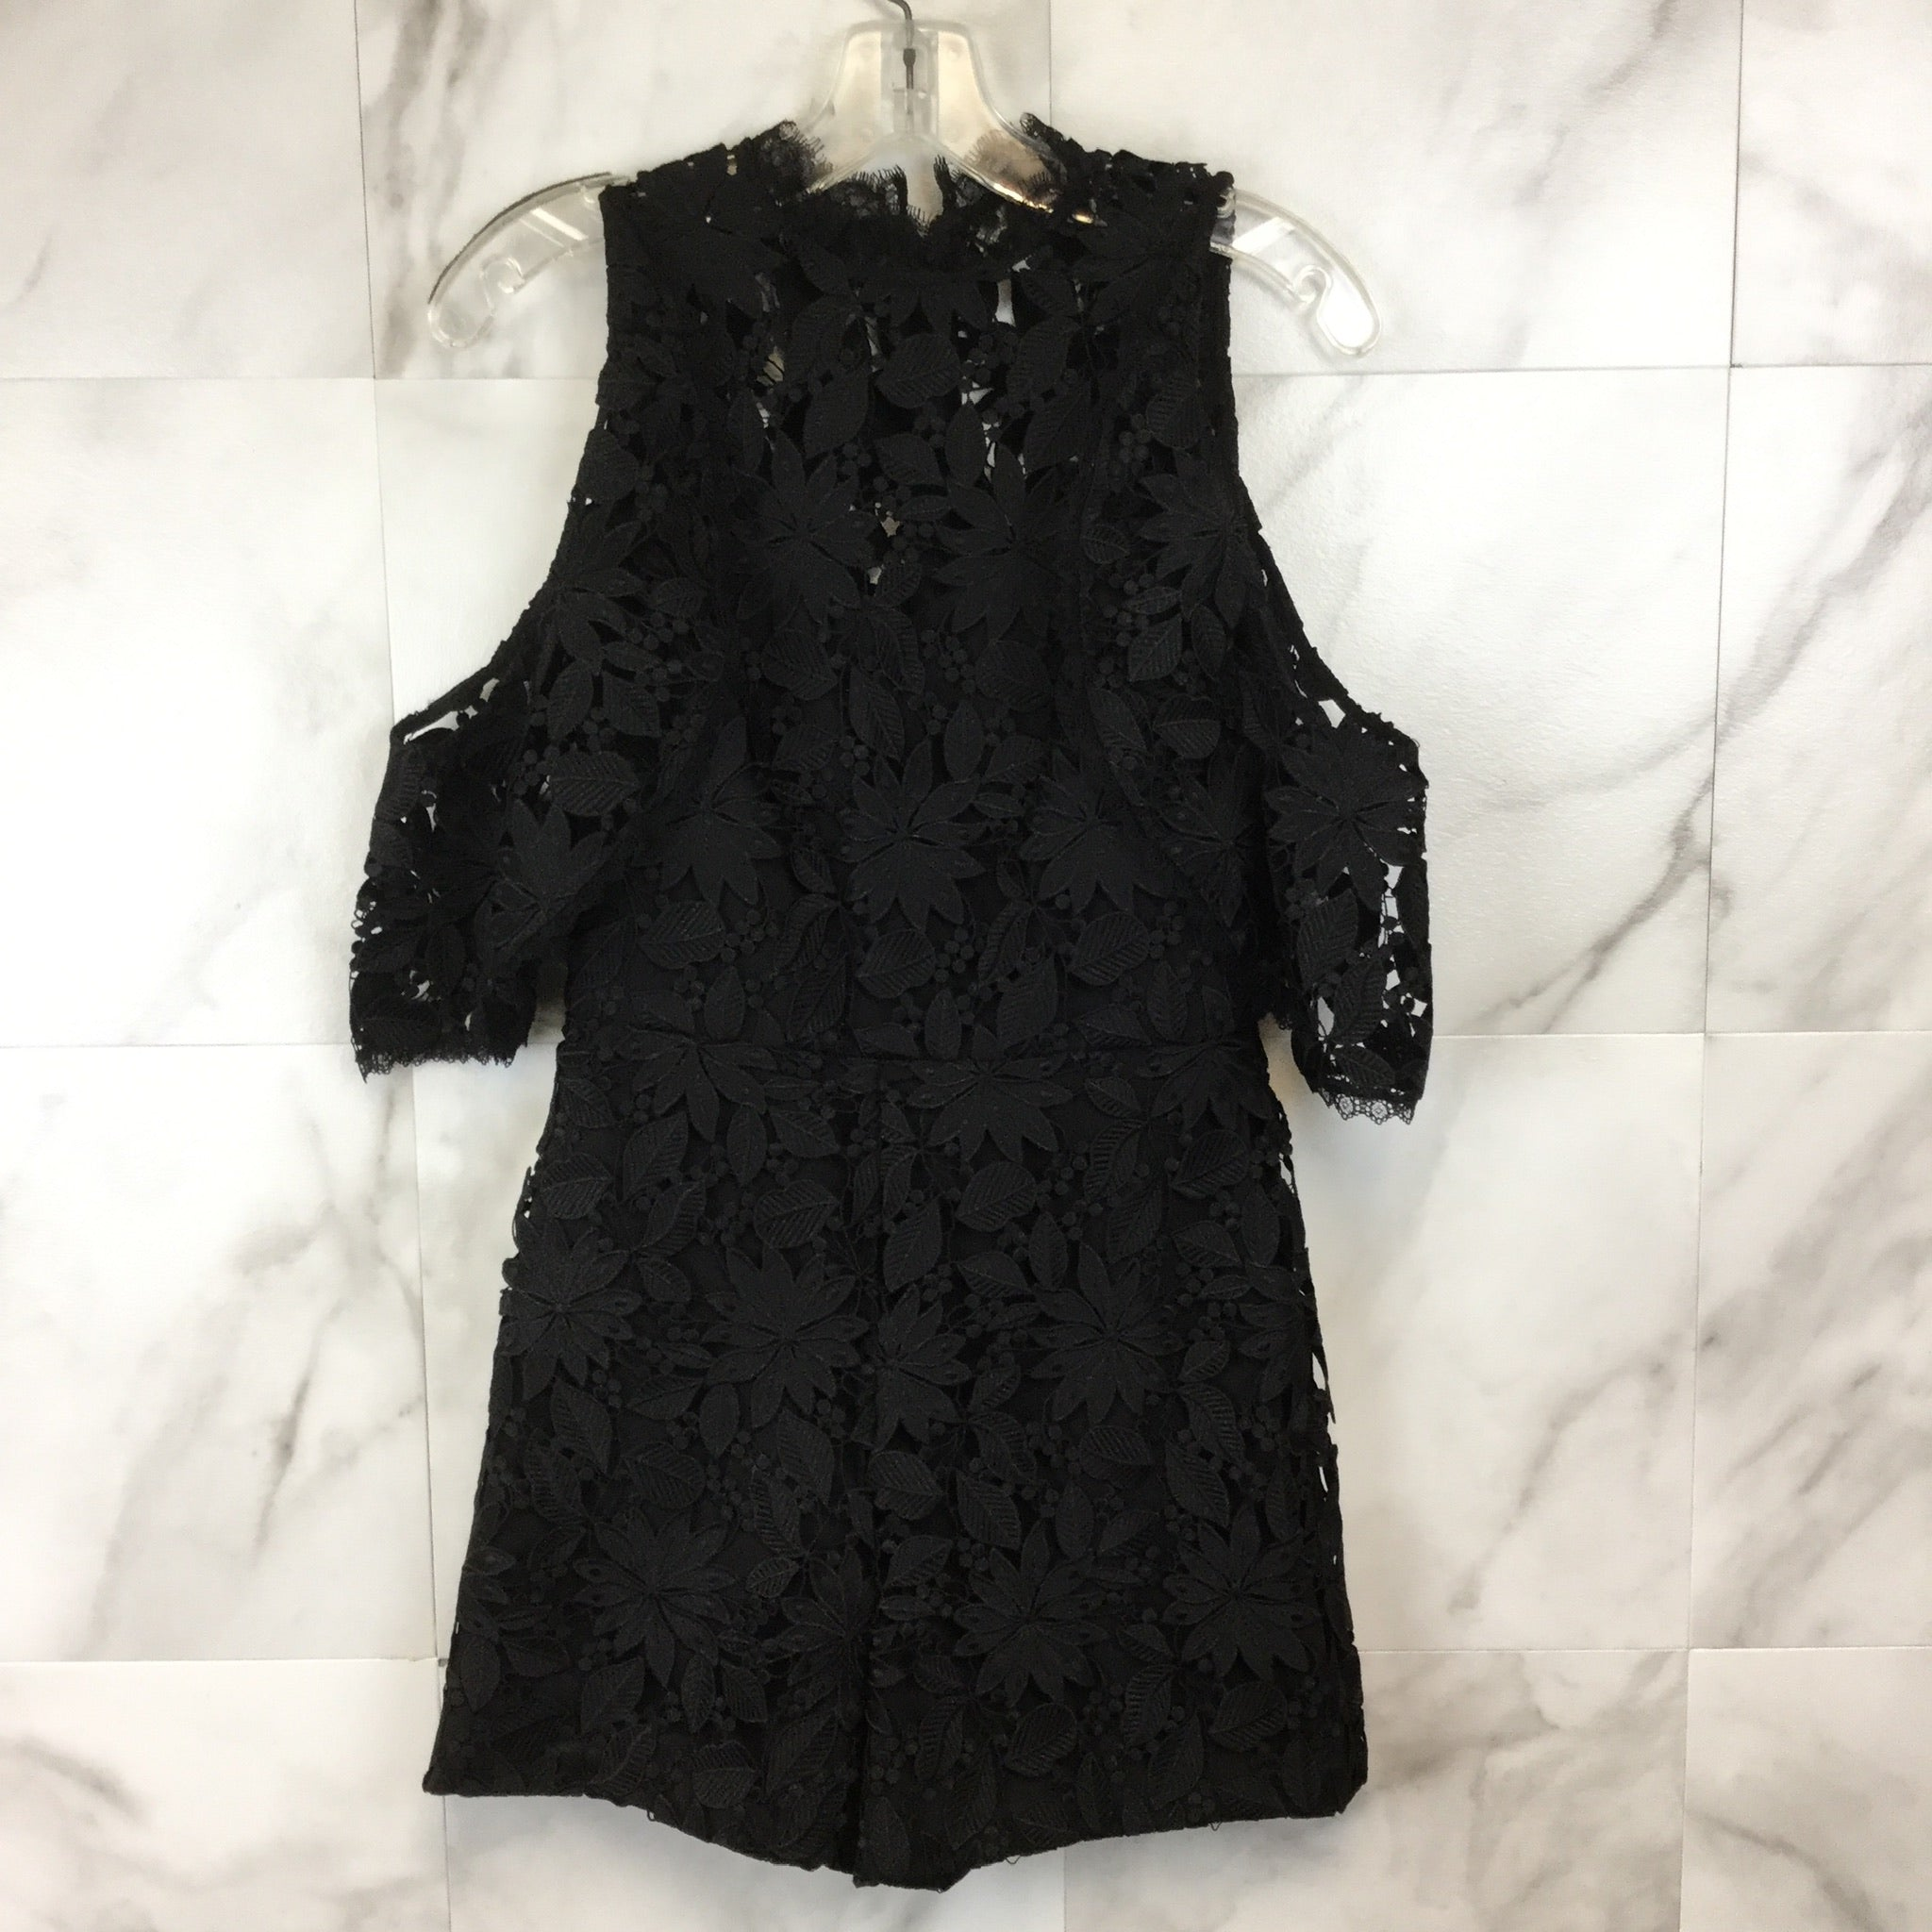 Alice + Olivia Junie Cold-Shoulder Lace Romper - size 2